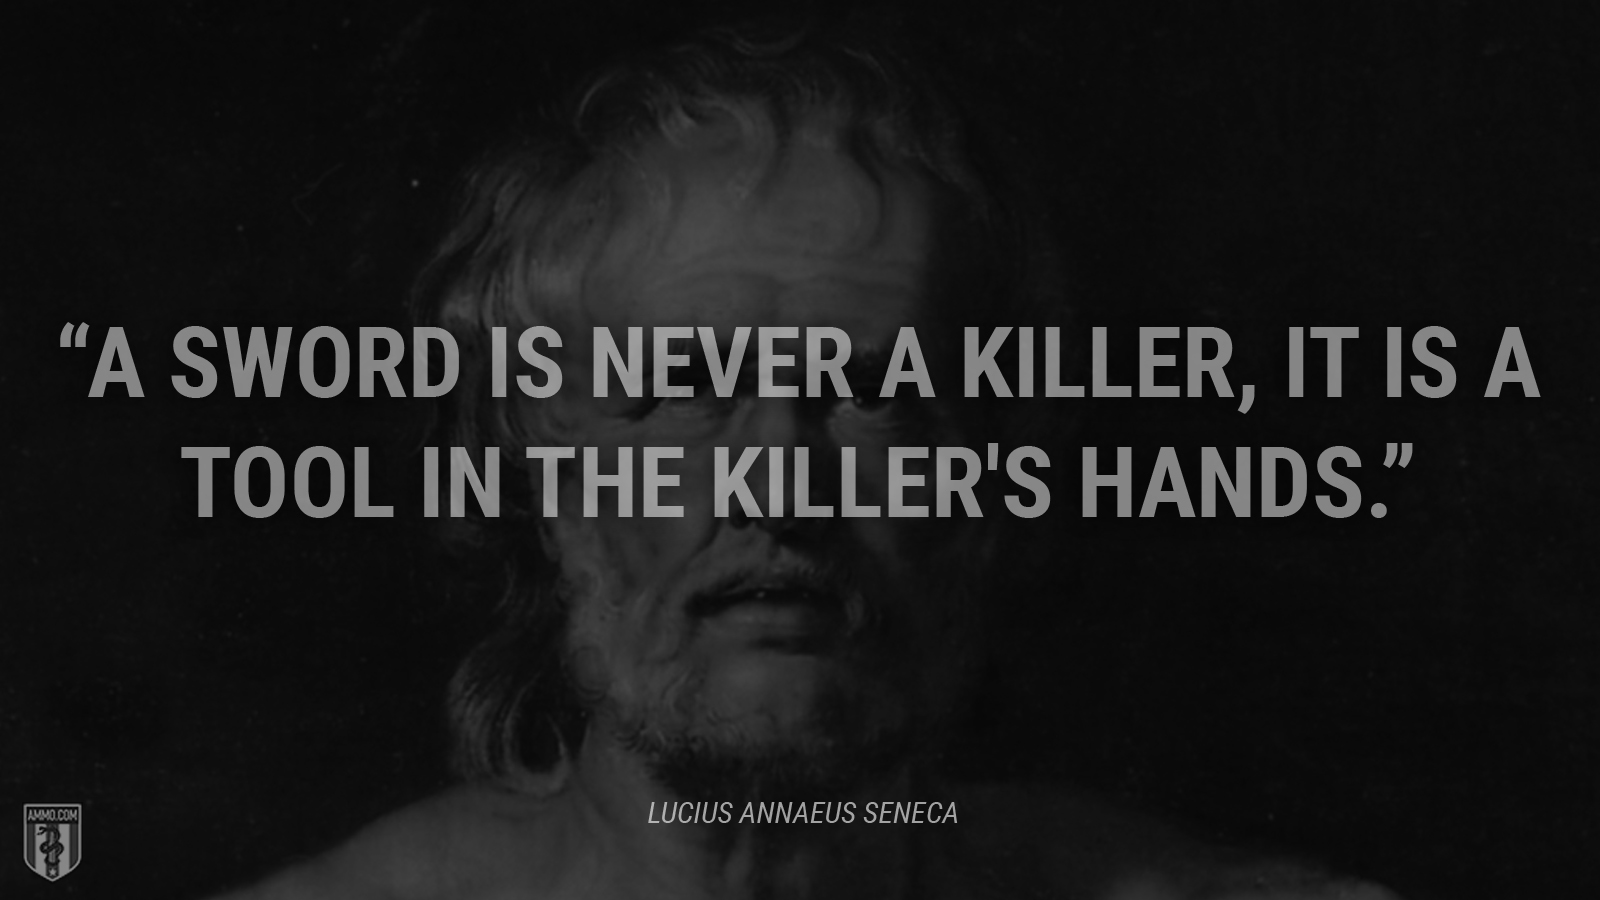 """A sword is never a killer, it is a tool in the killer's hands."" - Lucius Annaeus Seneca"